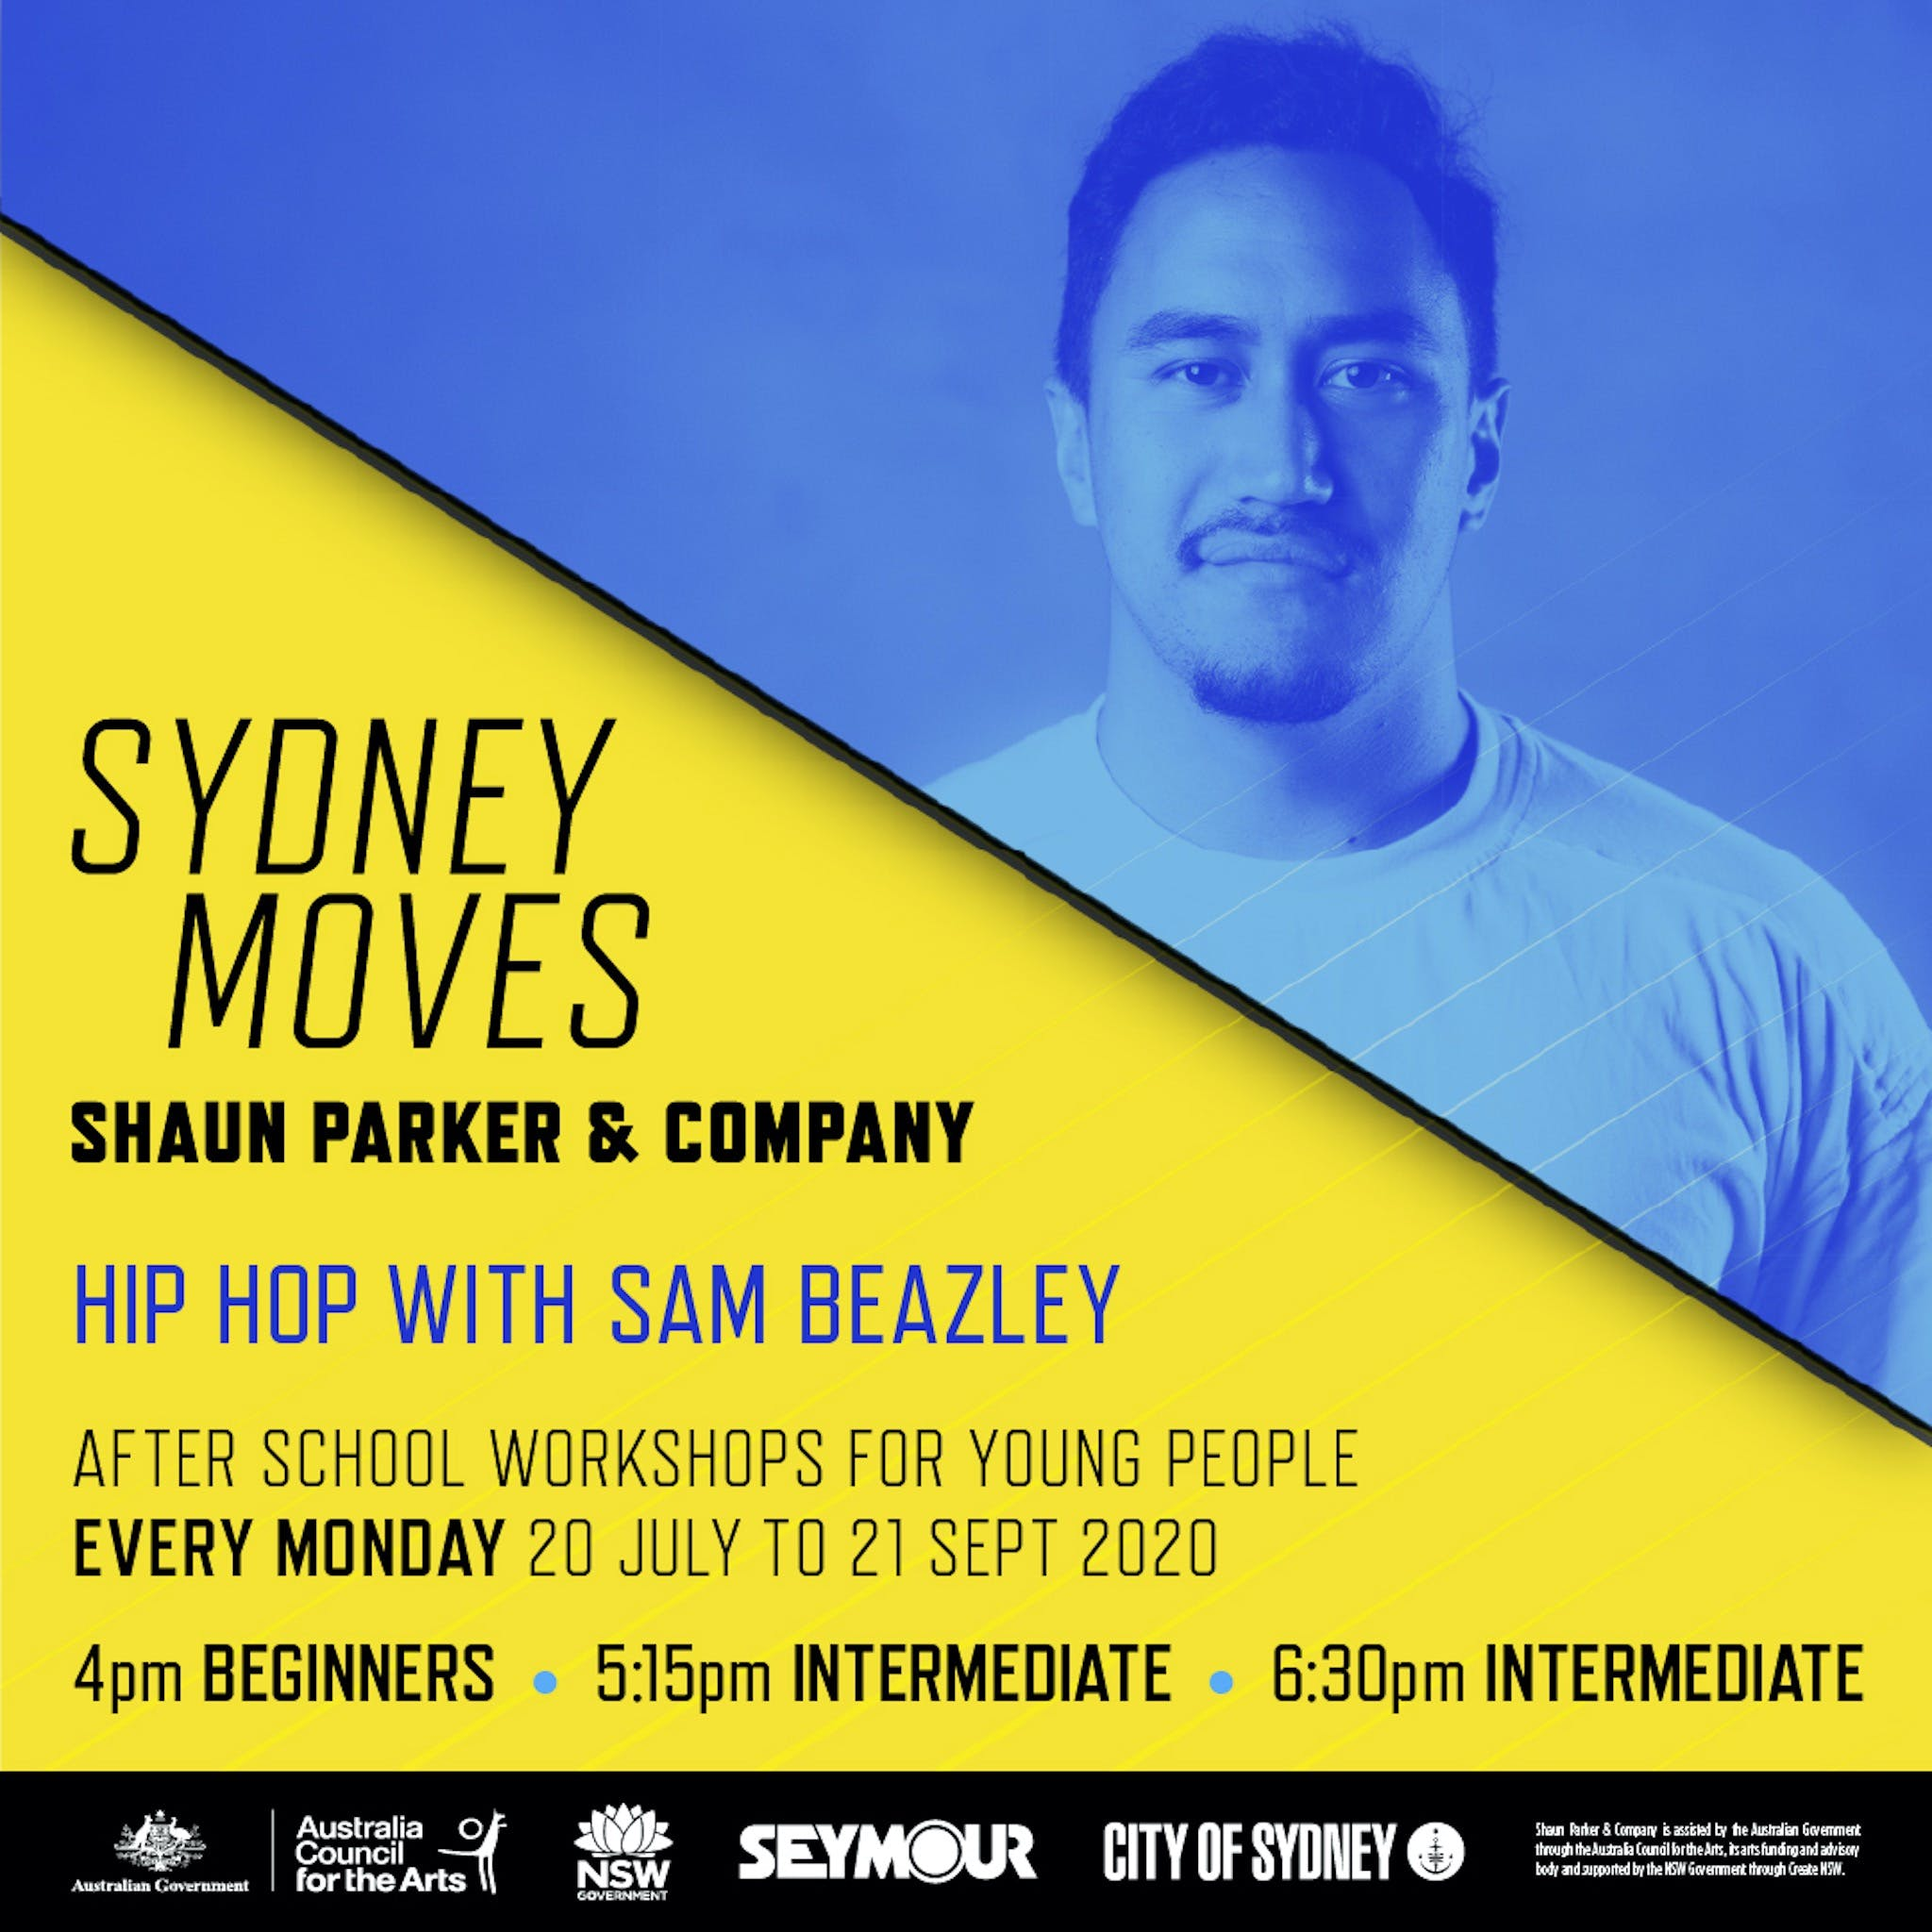 Sydney Moves - Beginners Hip Hop with Sam Beazley - Victoria Tourism